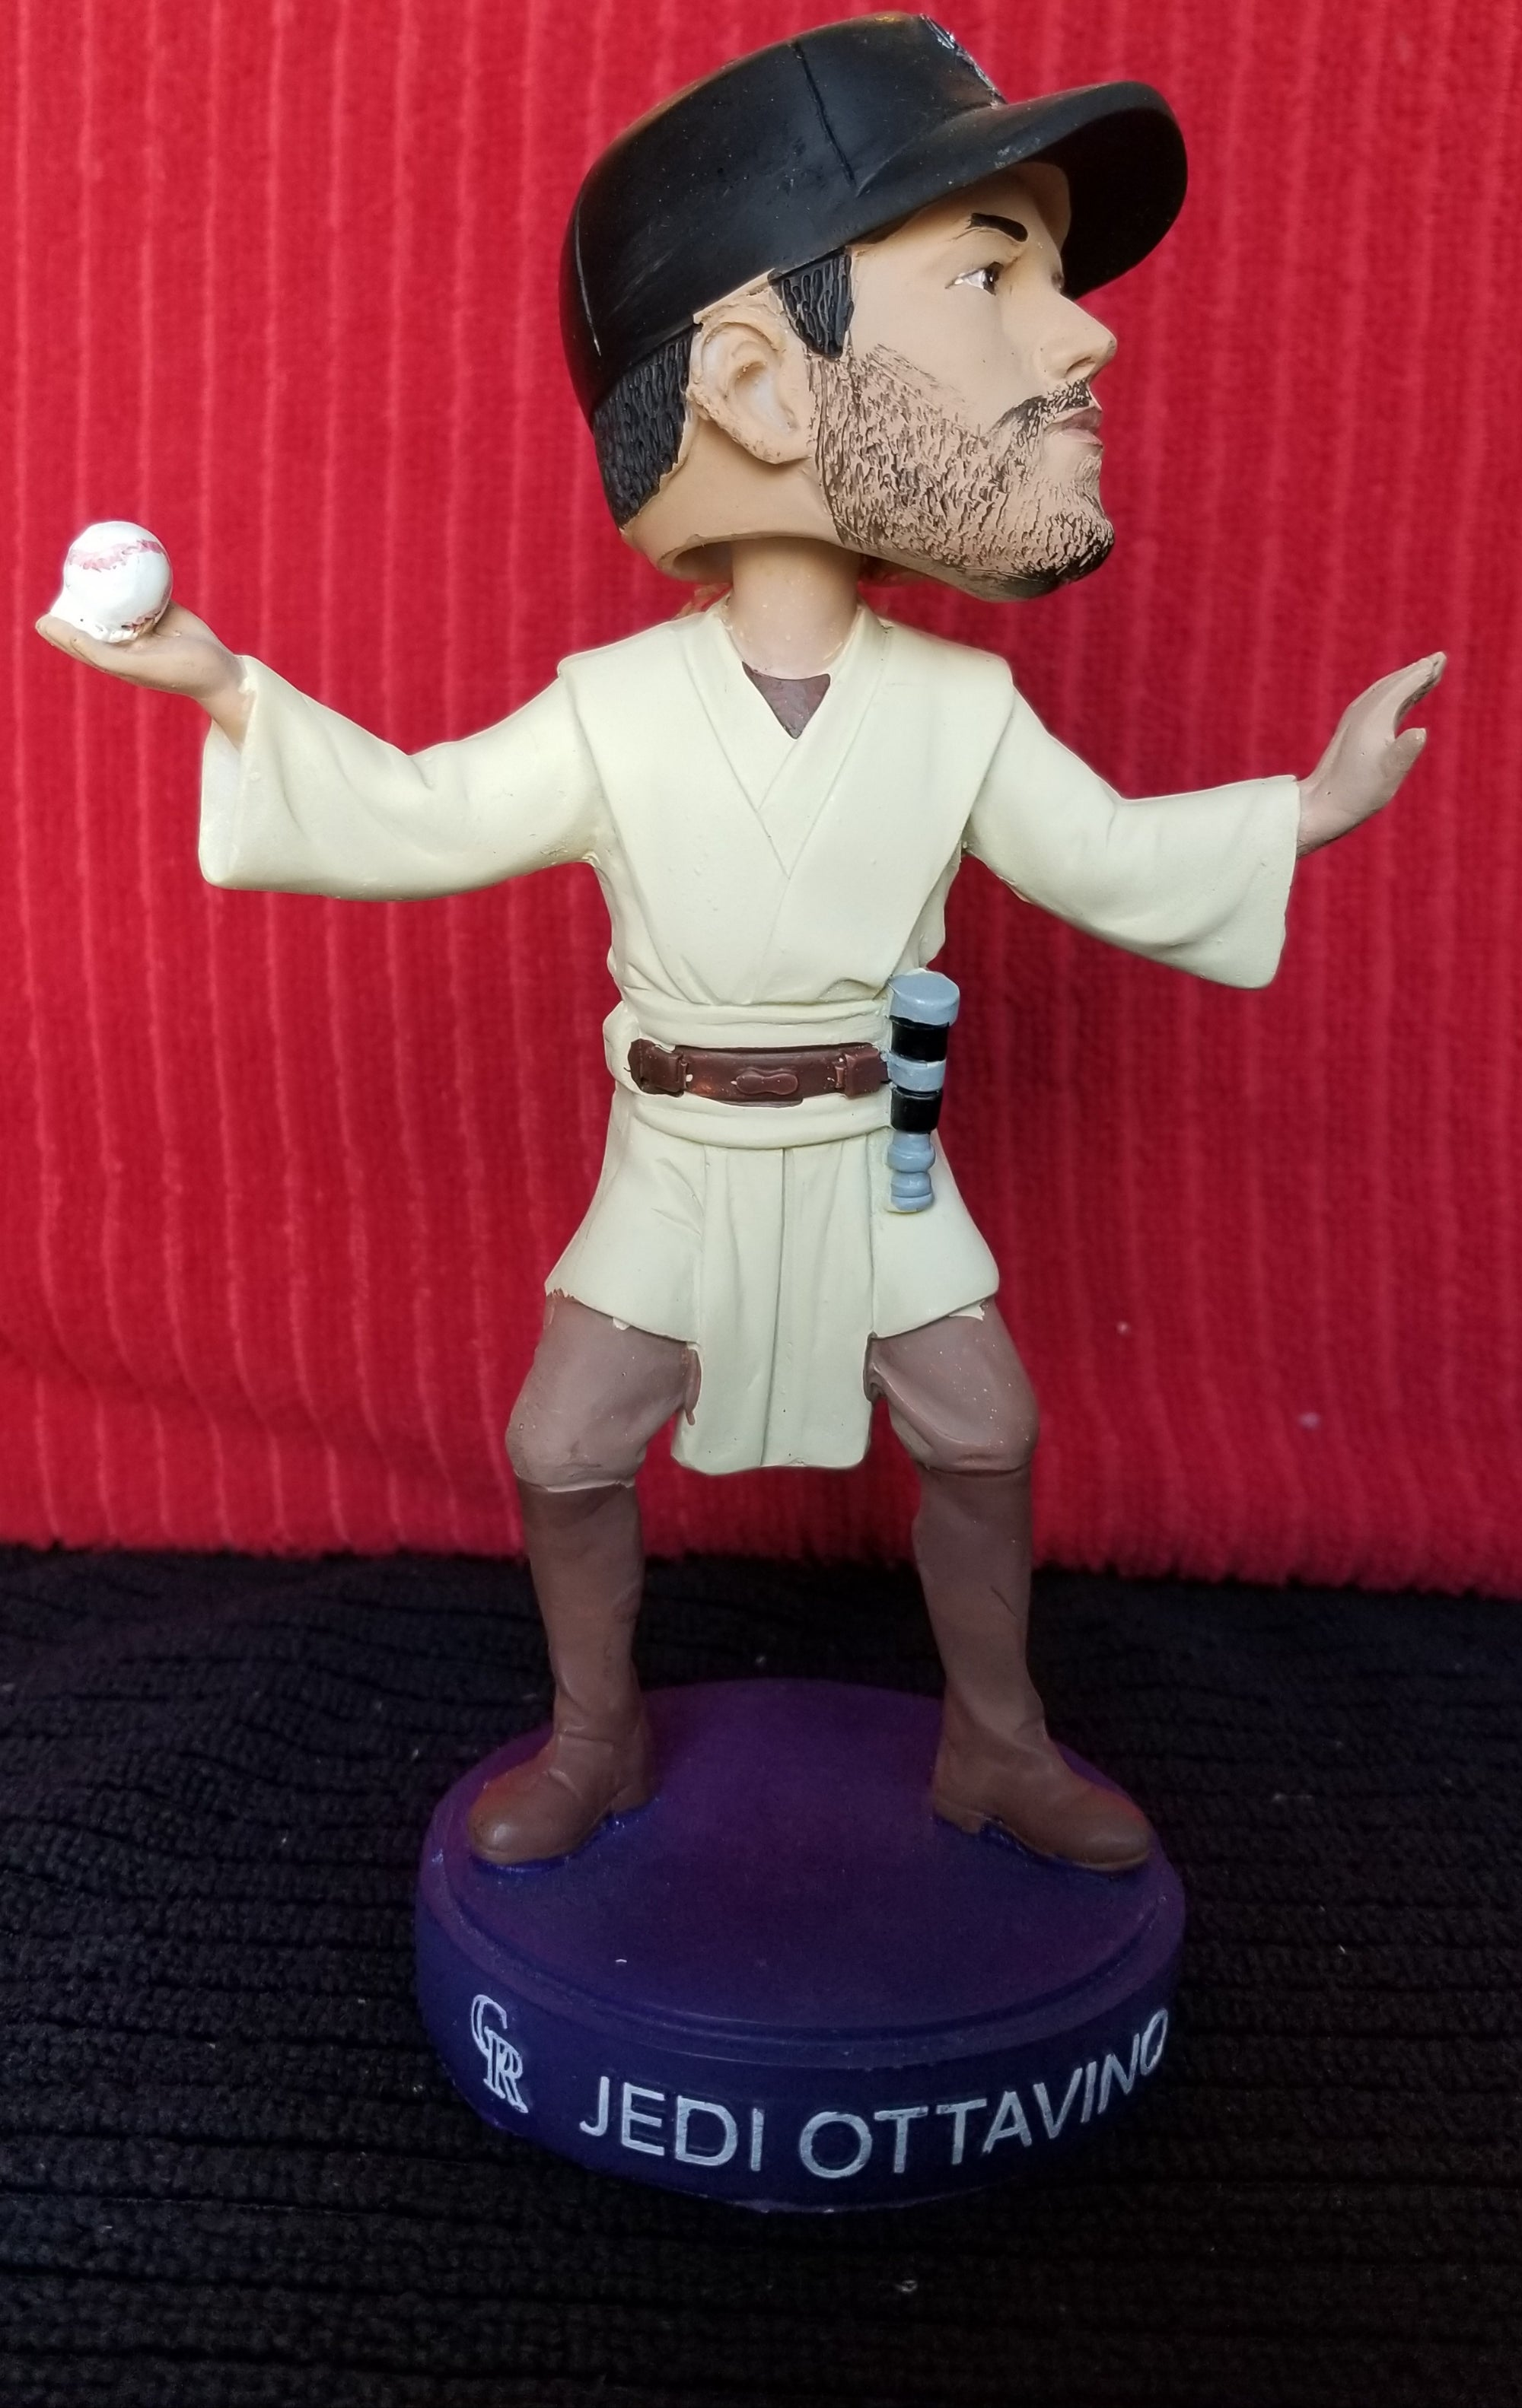 Adam Ottavino 2017 Colorado Rockies Star Wars Jedi (SGA) bobblehead